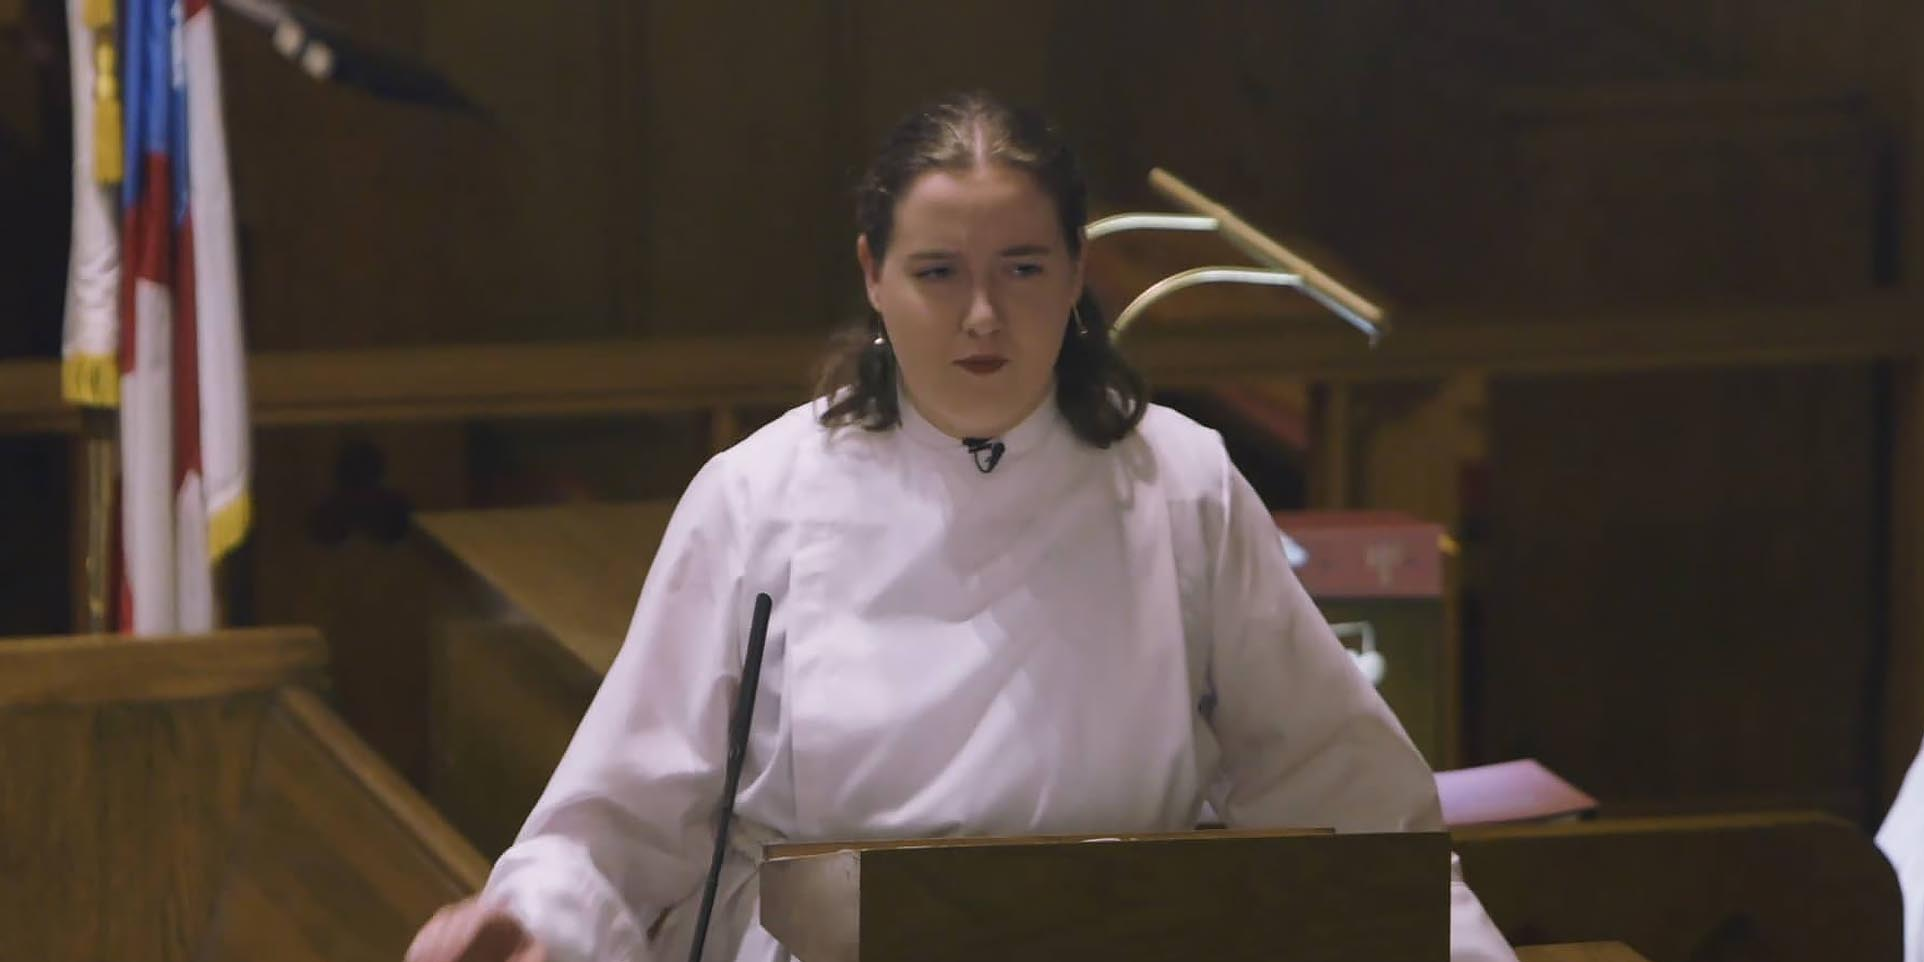 Sermon by Amanda Bourne